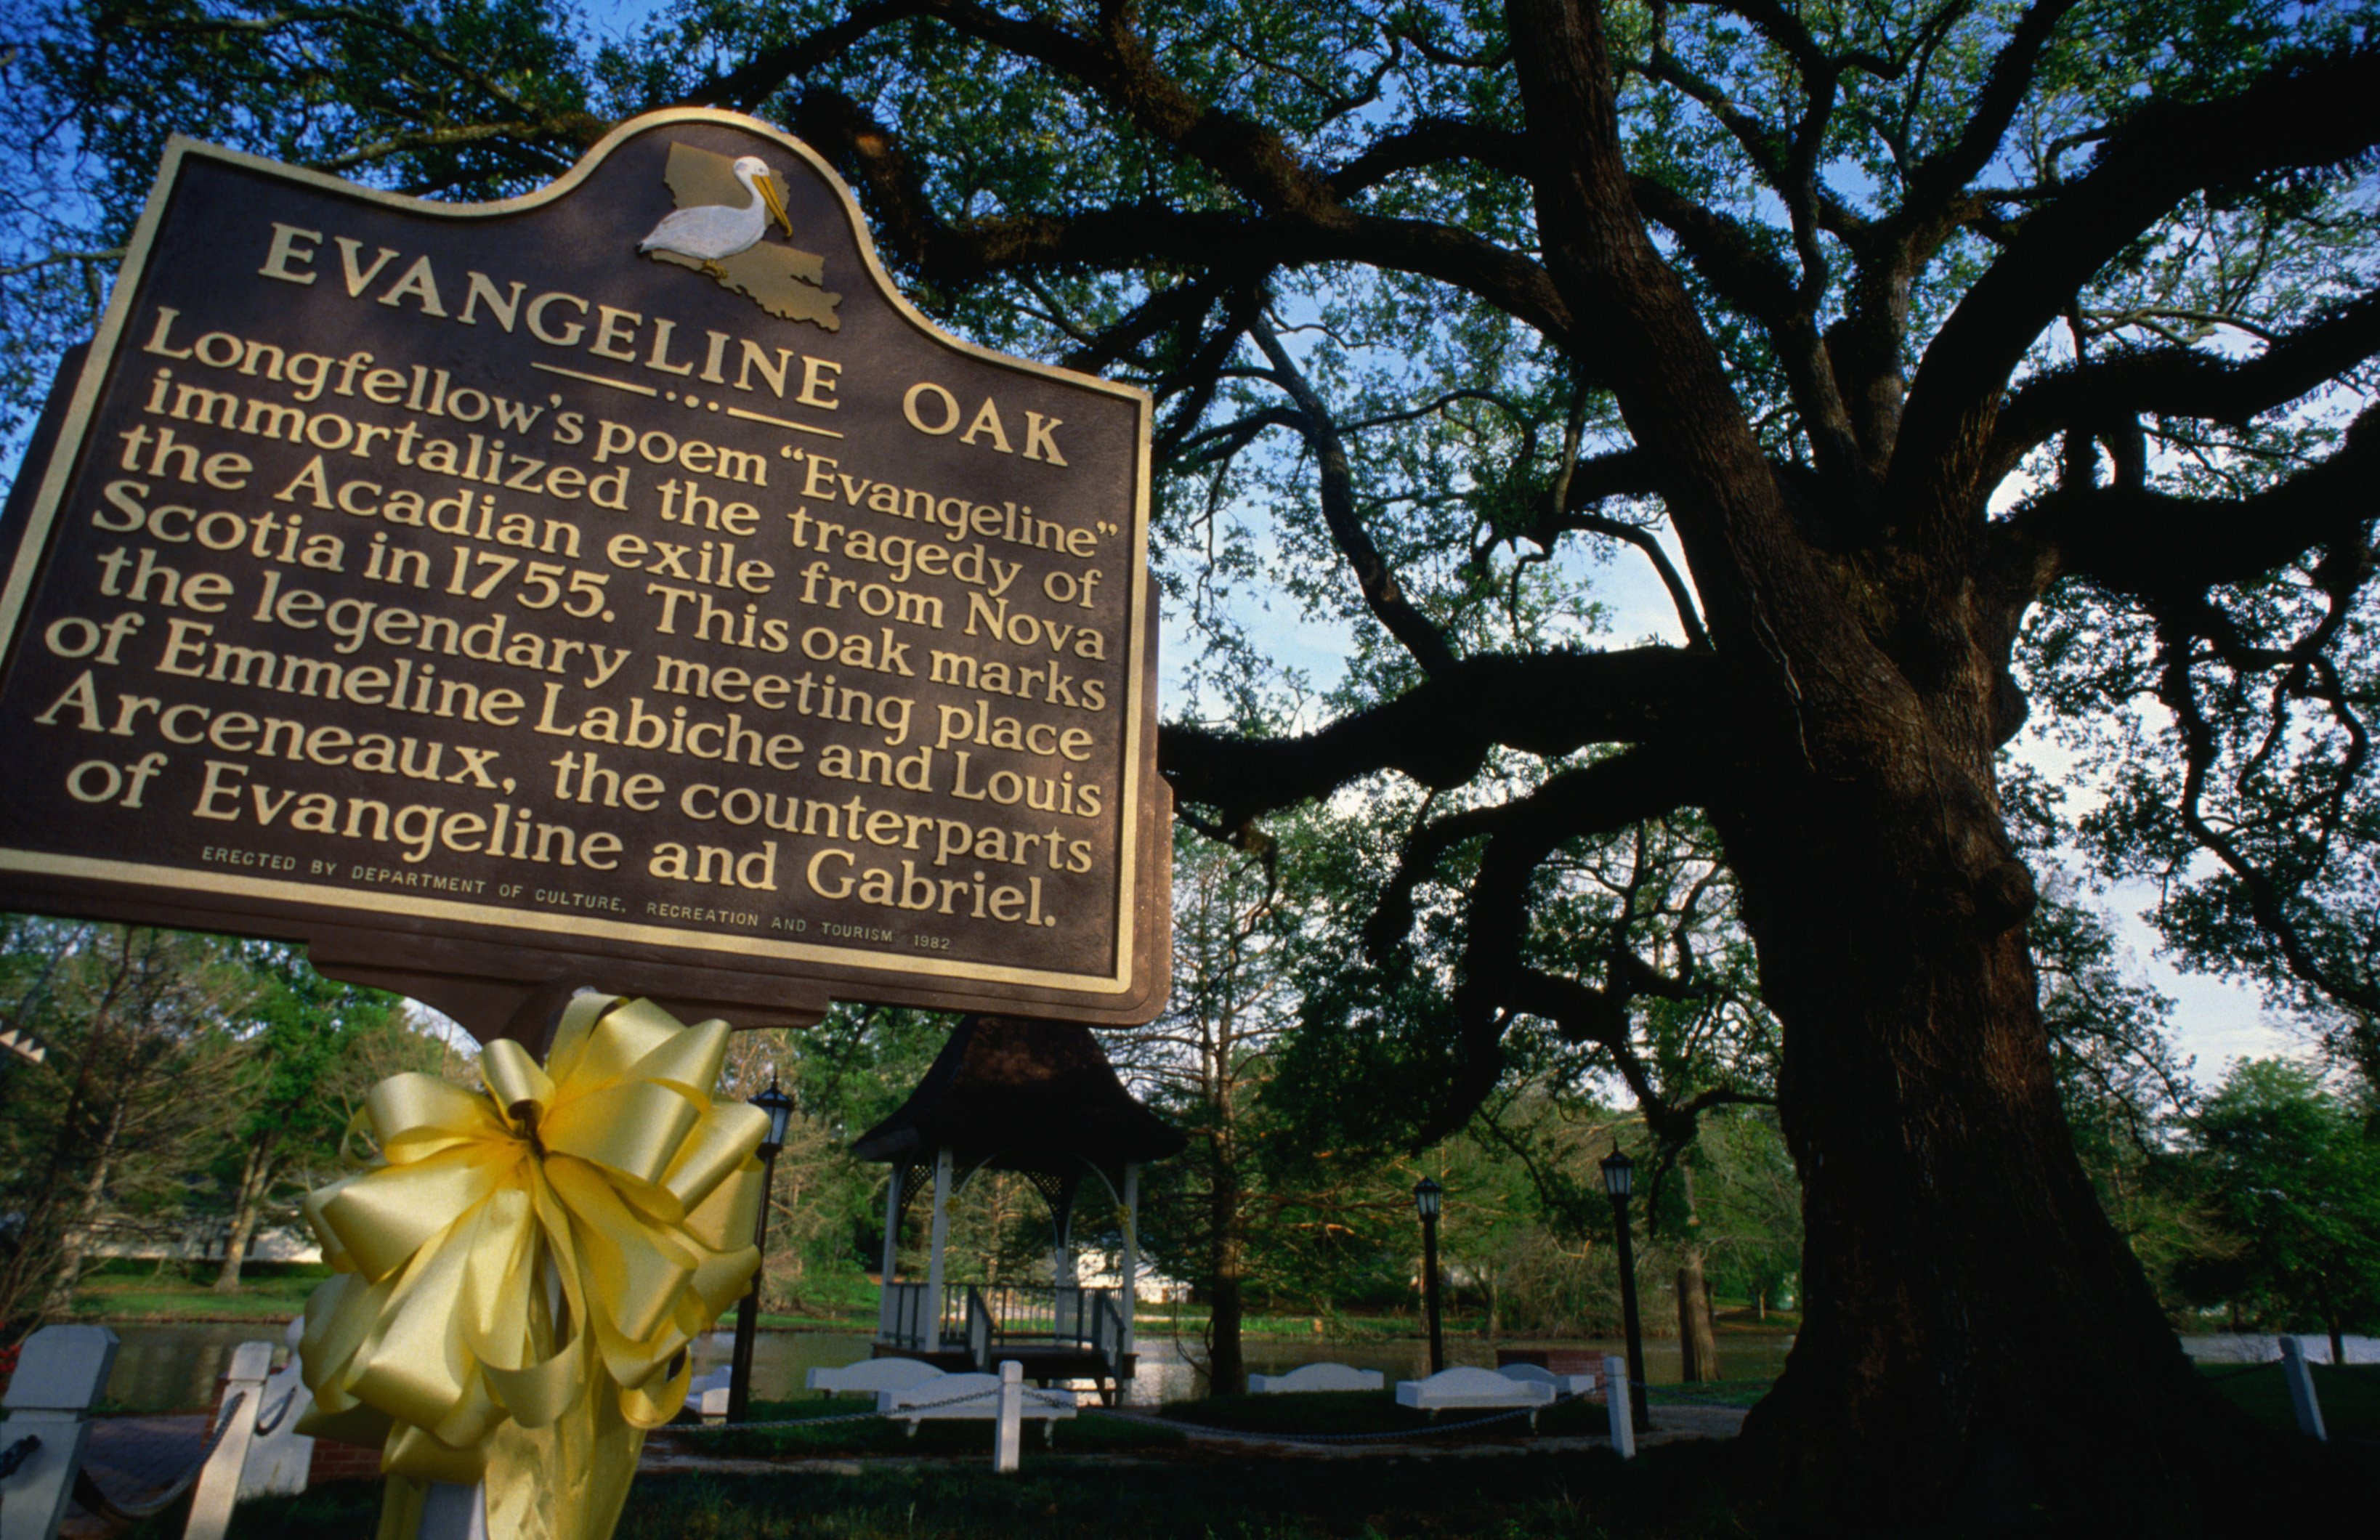 Sign commemorating Evangeline Oak from Henry Longfellow's poem